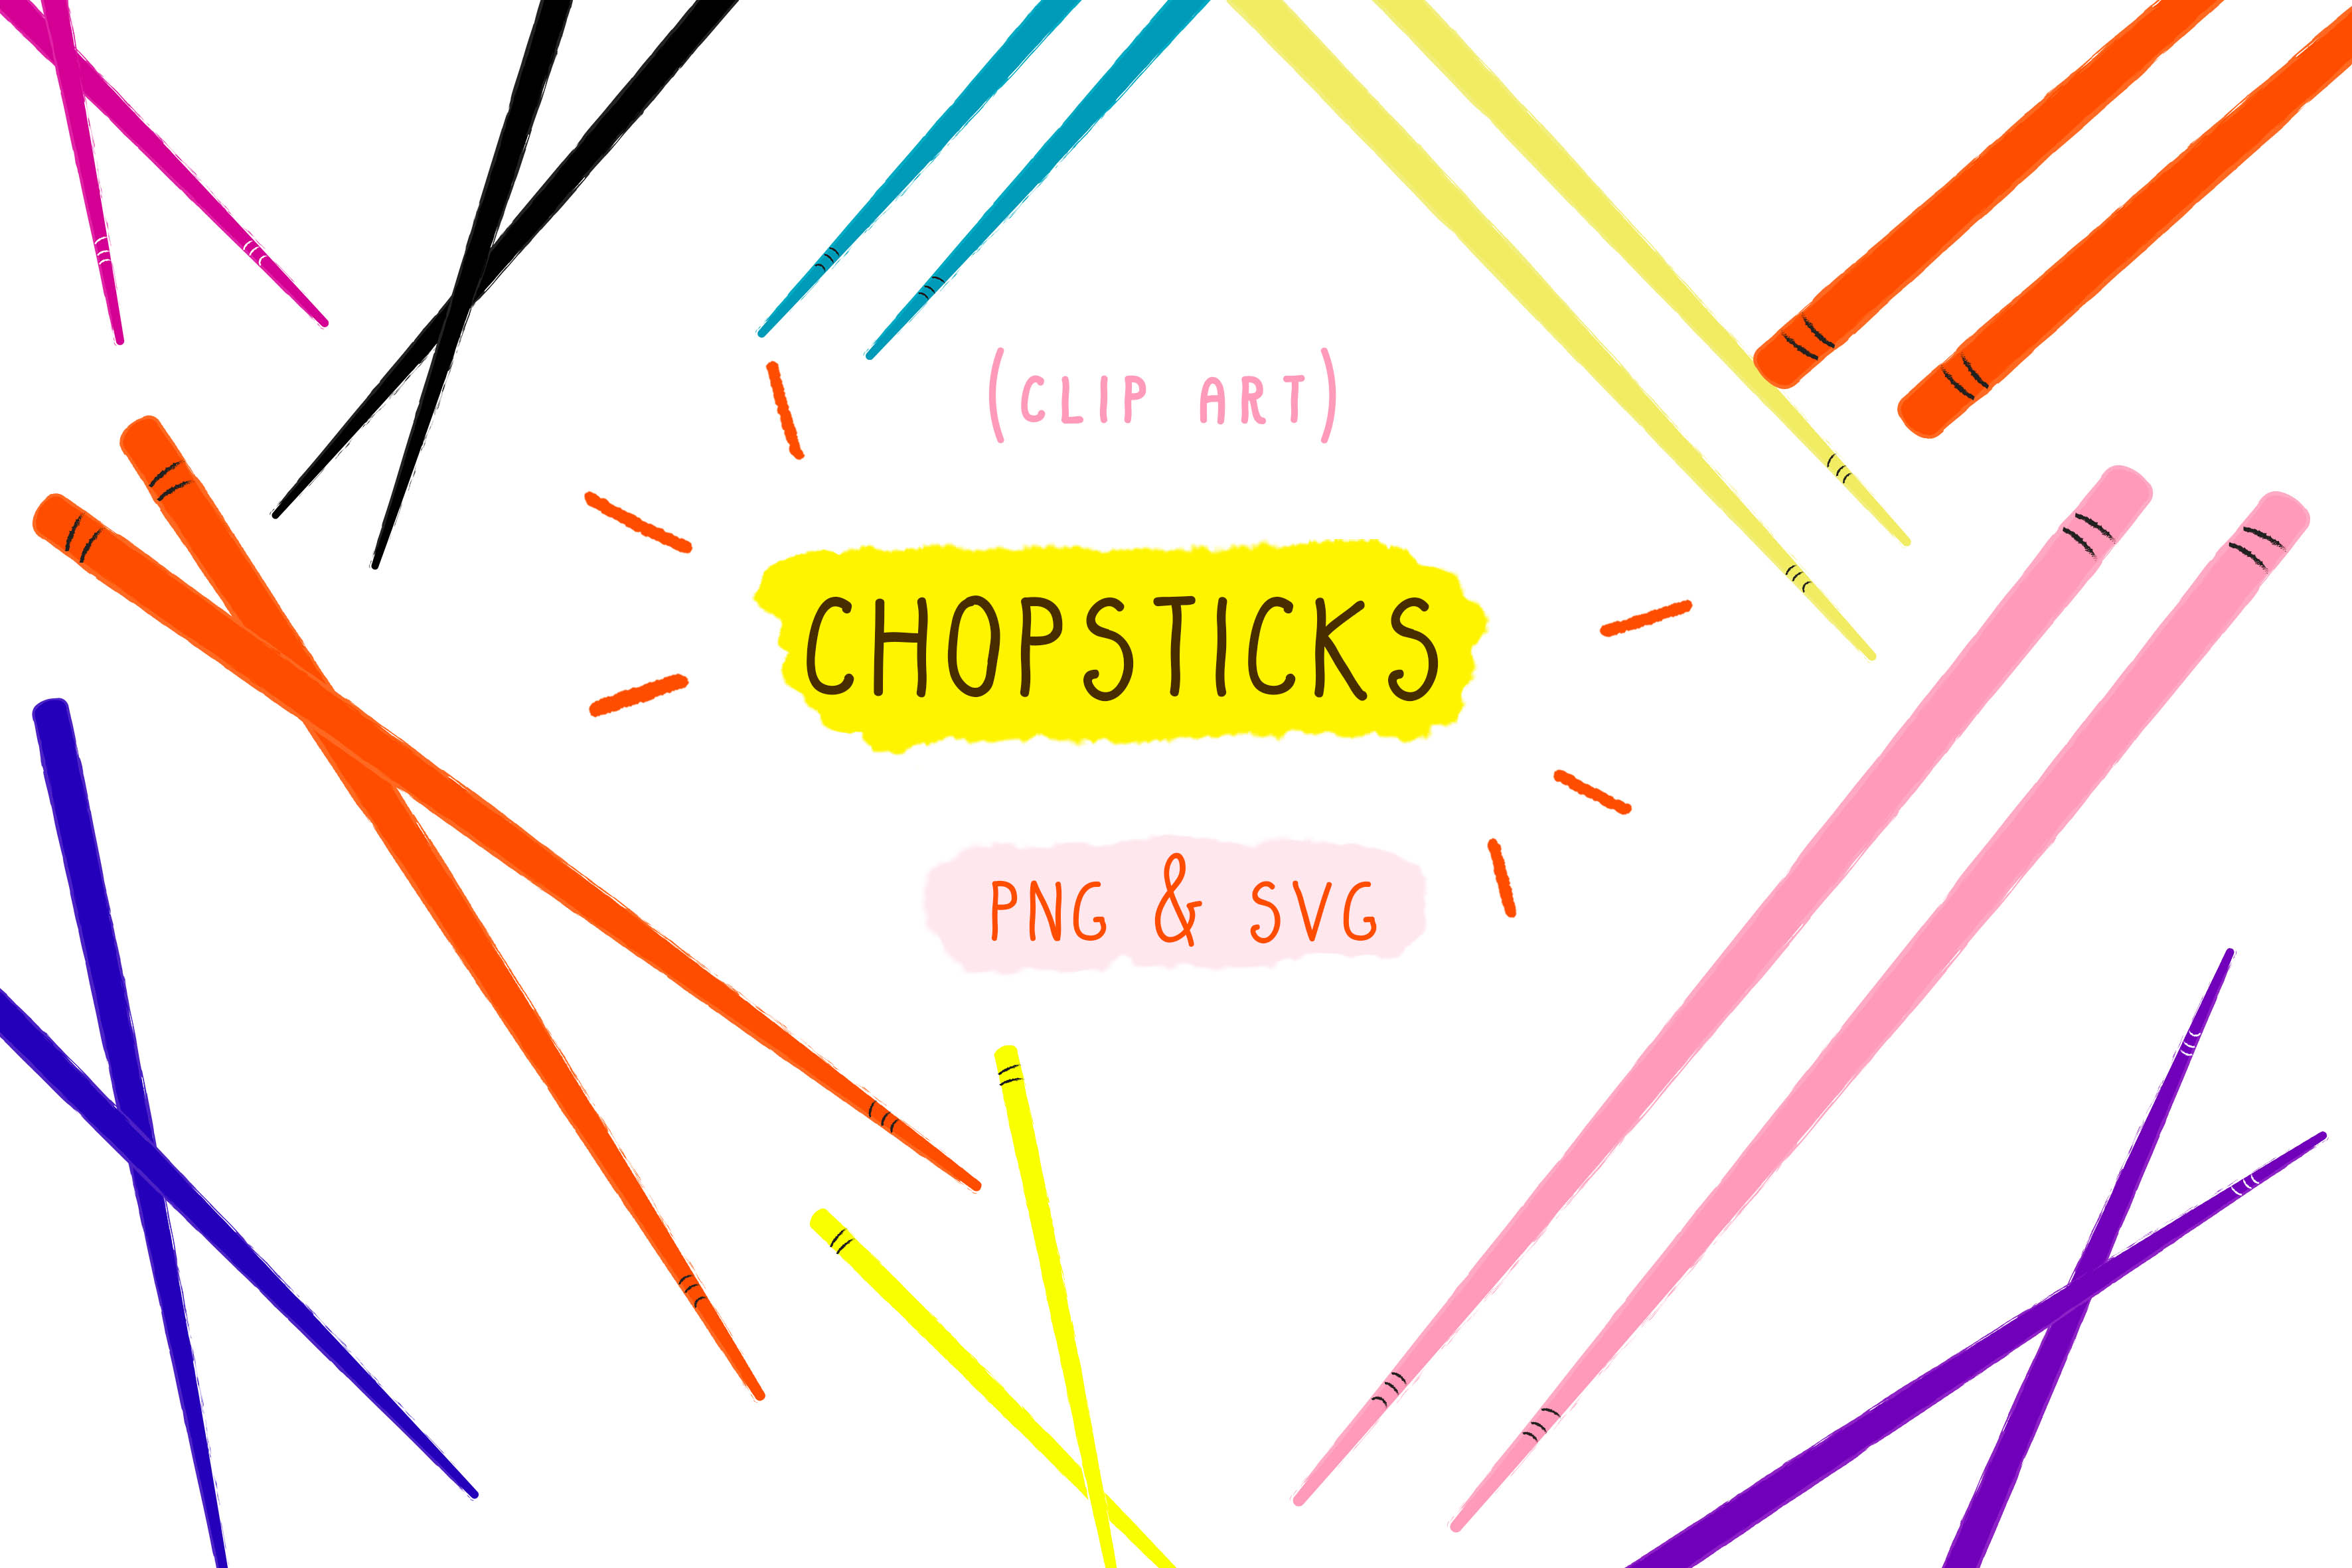 Download Free Chopstick Roll Maki Sushi Japan Graphic By Inkclouddesign for Cricut Explore, Silhouette and other cutting machines.